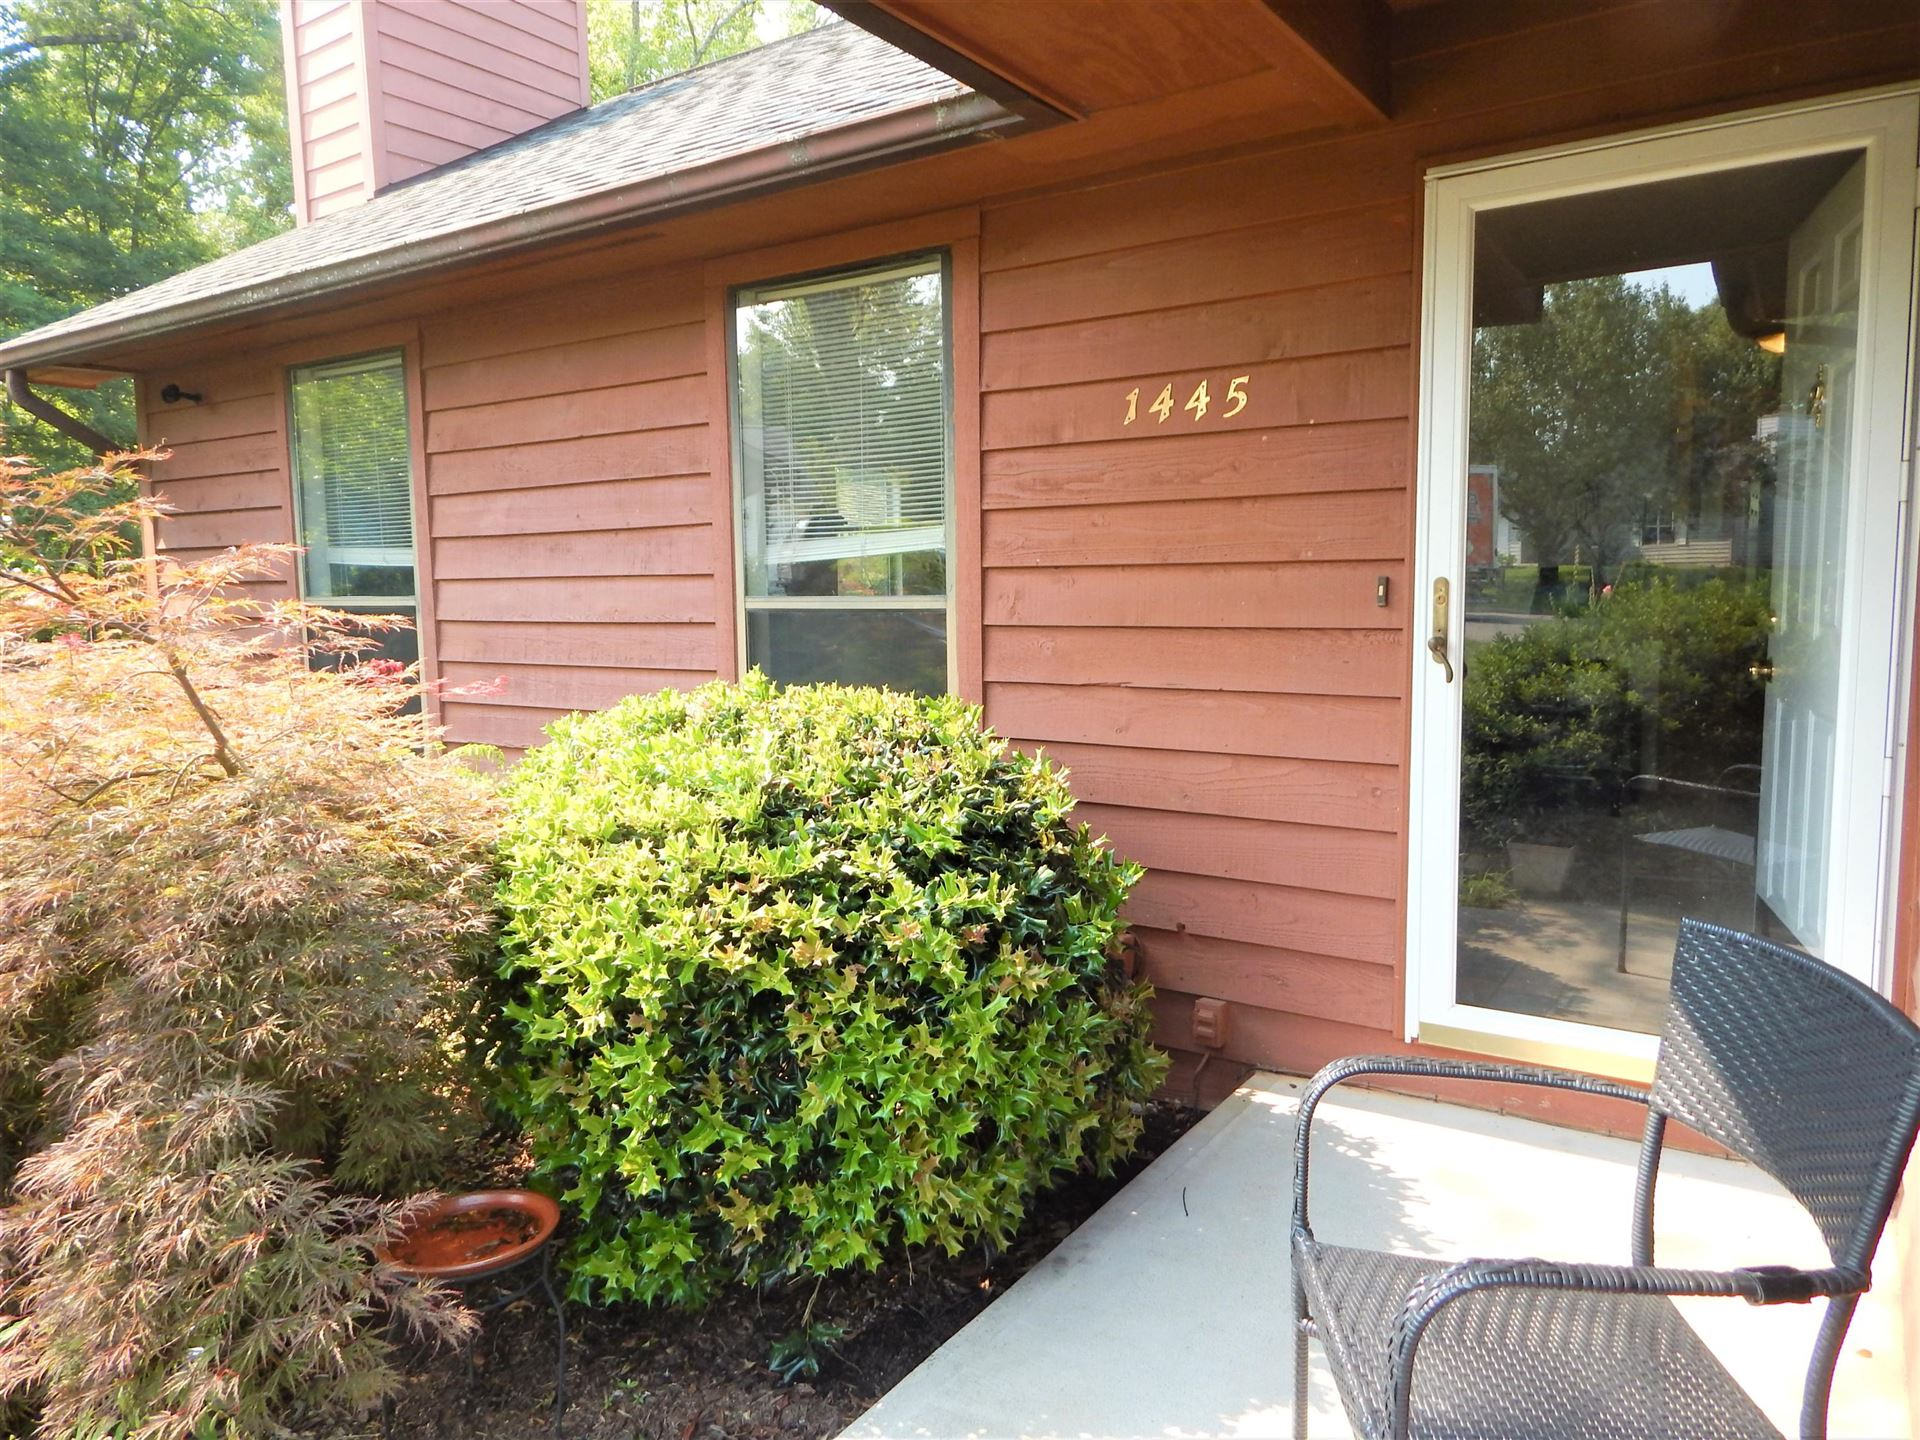 Photo of 1445 Francis Station Drive, Knoxville, TN 37909 (MLS # 1161400)